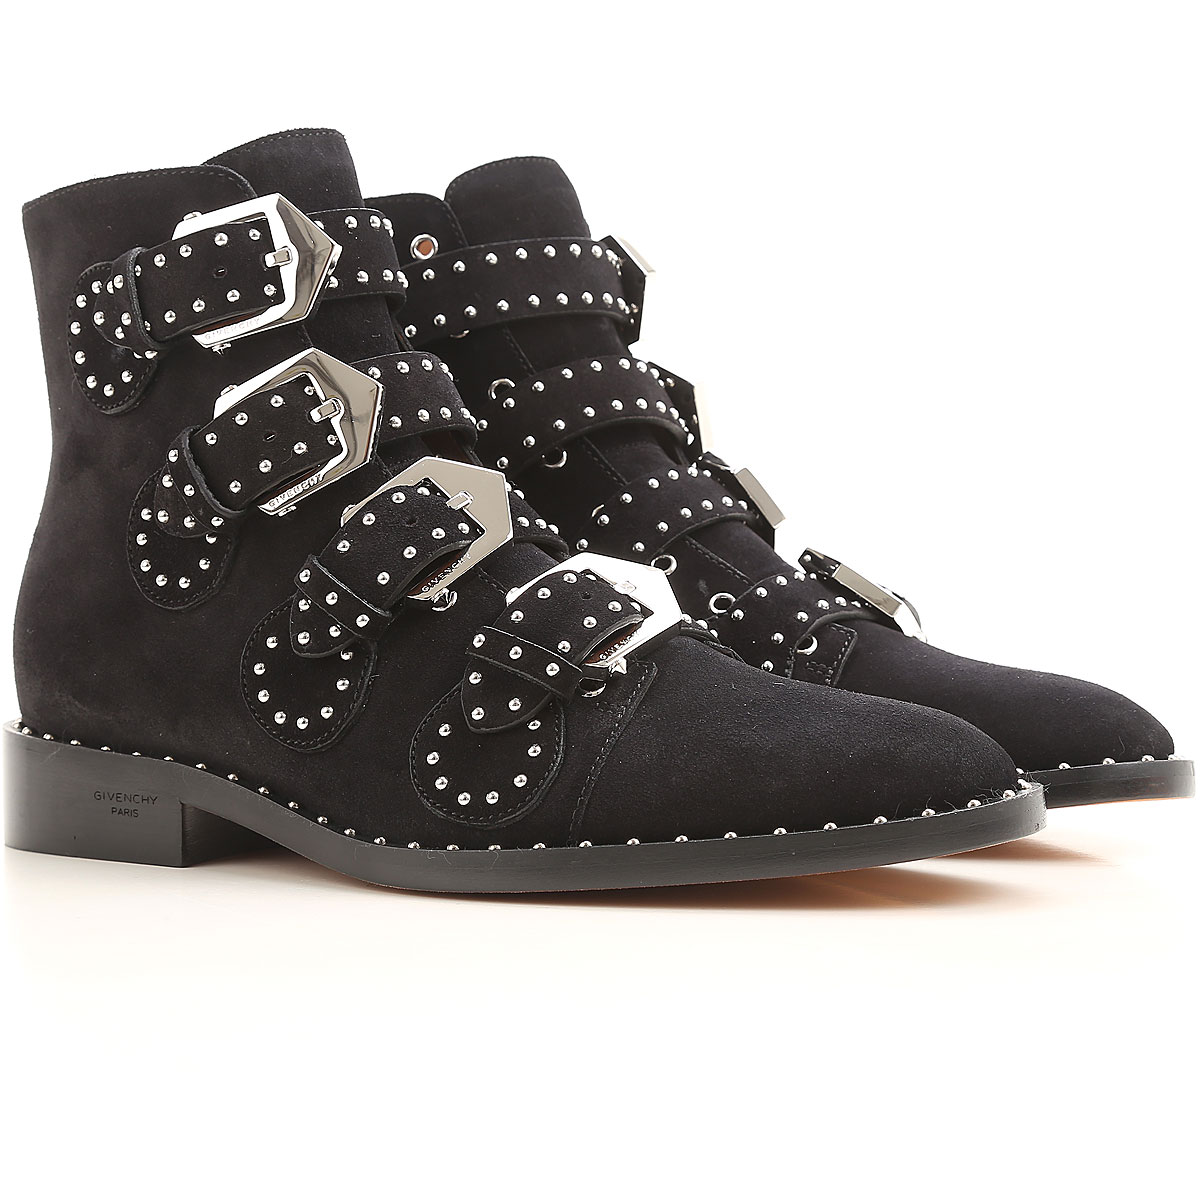 Givenchy Boots for Women, Booties On Sale in Outlet, Black, Suede leather, 2019, 10 5 8.5